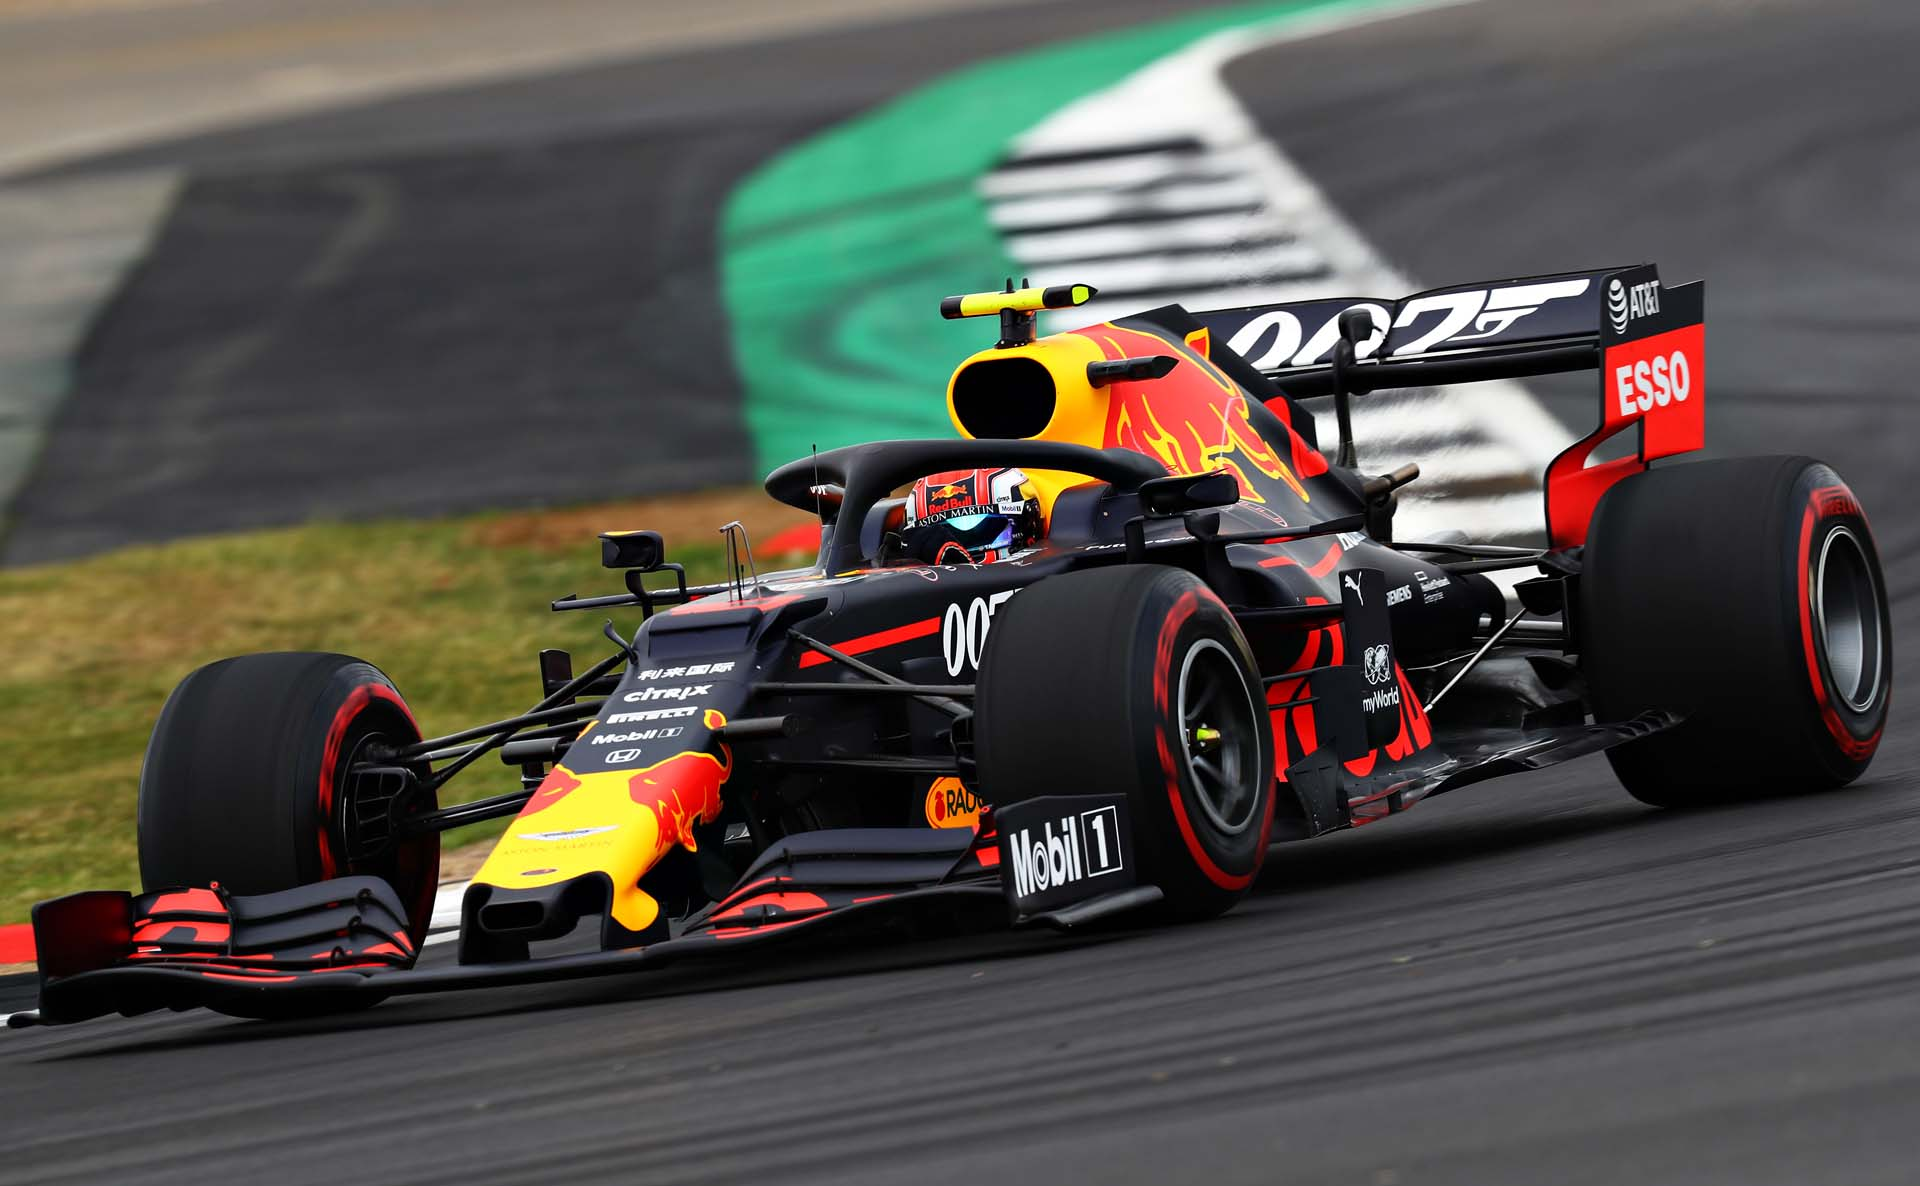 NORTHAMPTON, ENGLAND - JULY 12: Pierre Gasly of France driving the (10) Aston Martin Red Bull Racing RB15 on track during practice for the F1 Grand Prix of Great Britain at Silverstone on July 12, 2019 in Northampton, England. (Photo by Mark Thompson/Getty Images) // Getty Images / Red Bull Content Pool  // AP-1ZX5X5ATH1W11 // Usage for editorial use only // Please go to www.redbullcontentpool.com for further information. //